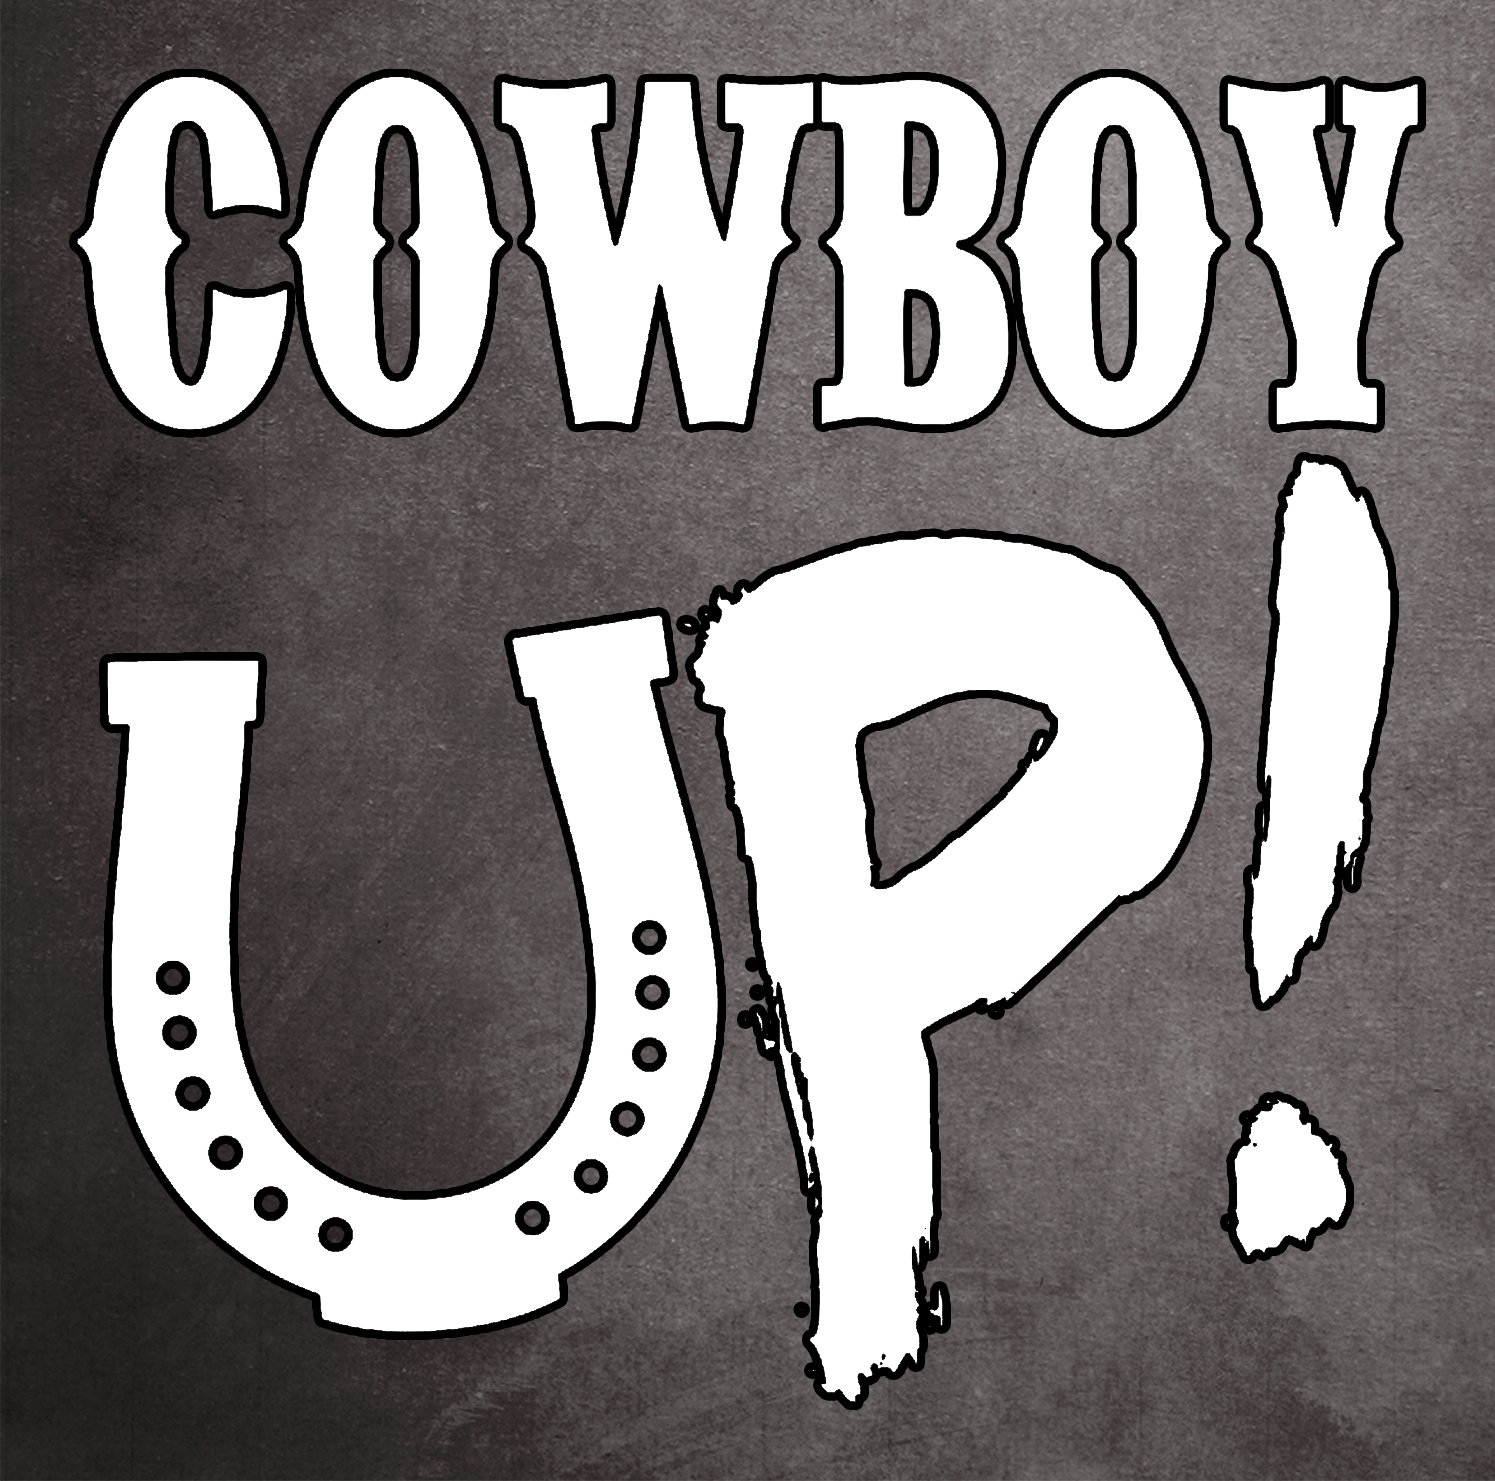 c242009bbac Amazon.com  Cowboy Up! Lucky Horseshoe Rodeo Hat Boots Fresh Water  Background Full Color window decal sticker  Automotive